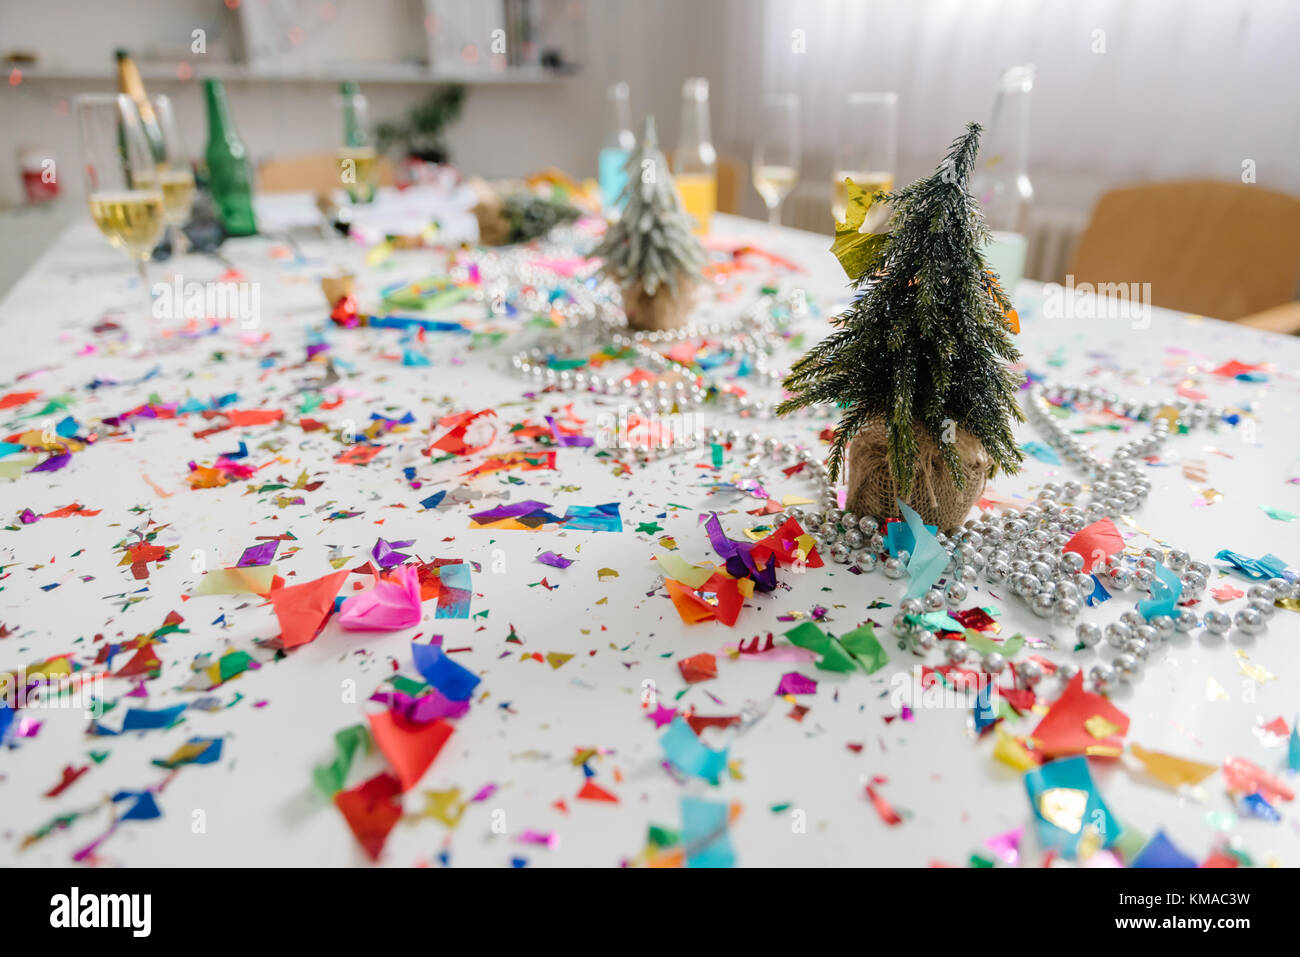 christmas office party leftovers stock photo 167415469 alamy